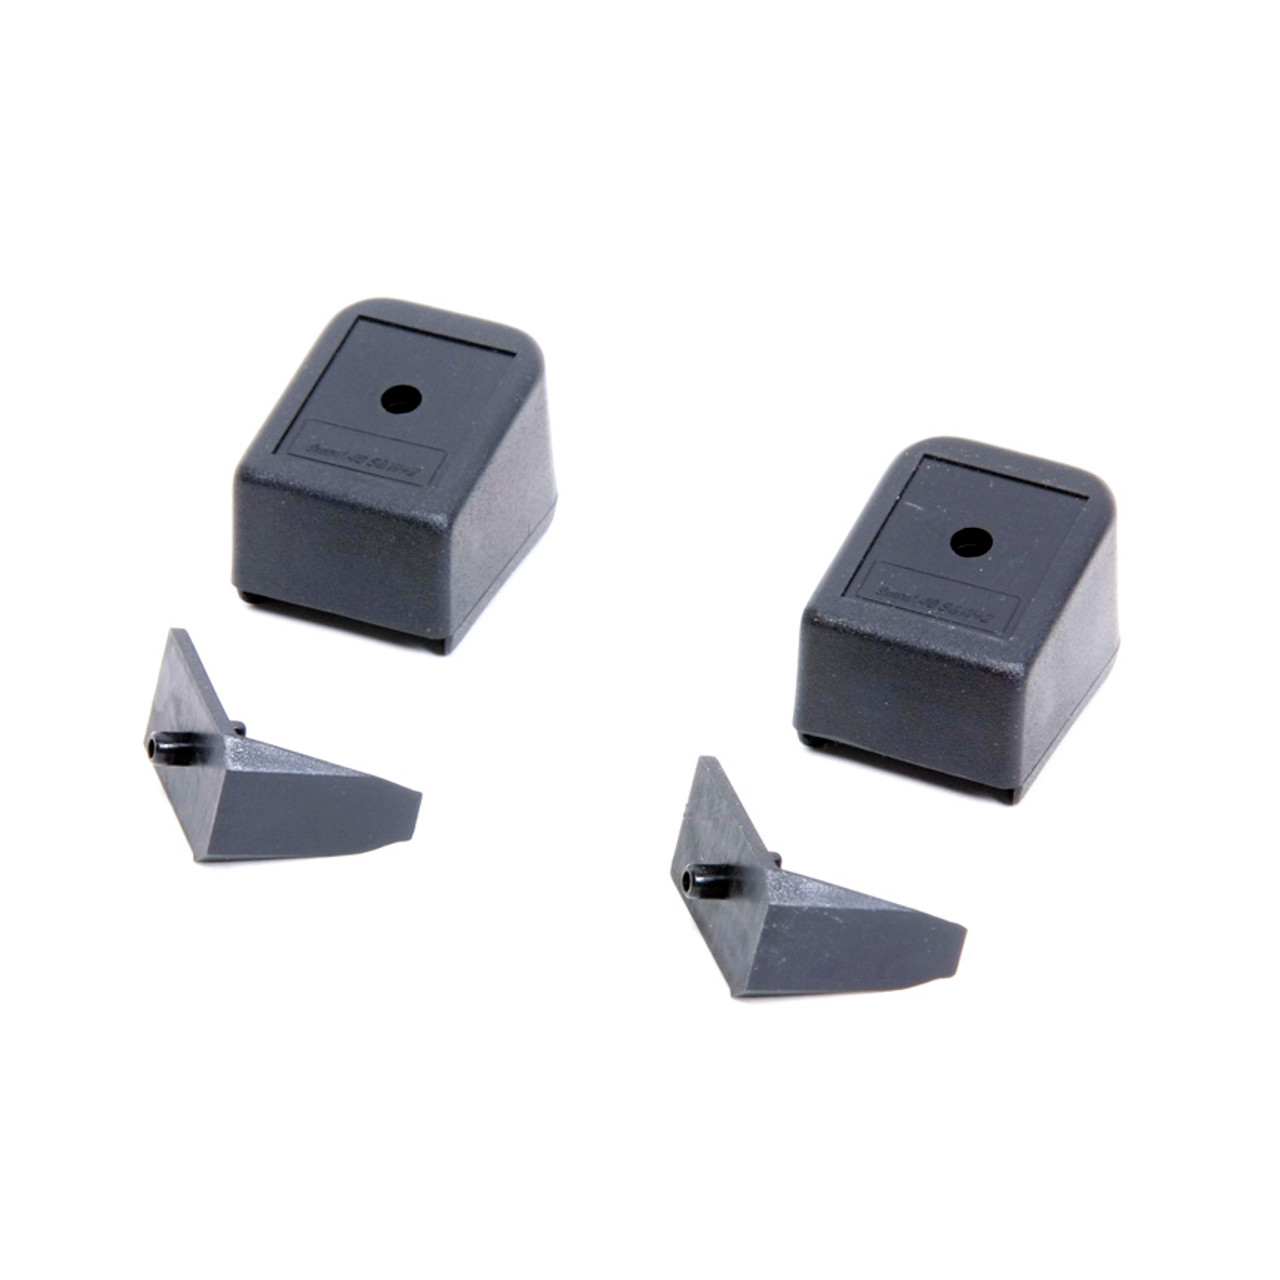 Fits the Glock® 9mm (+2) & .40 S&W (+1) Floor Plates (2 Pack) - Black Polymer